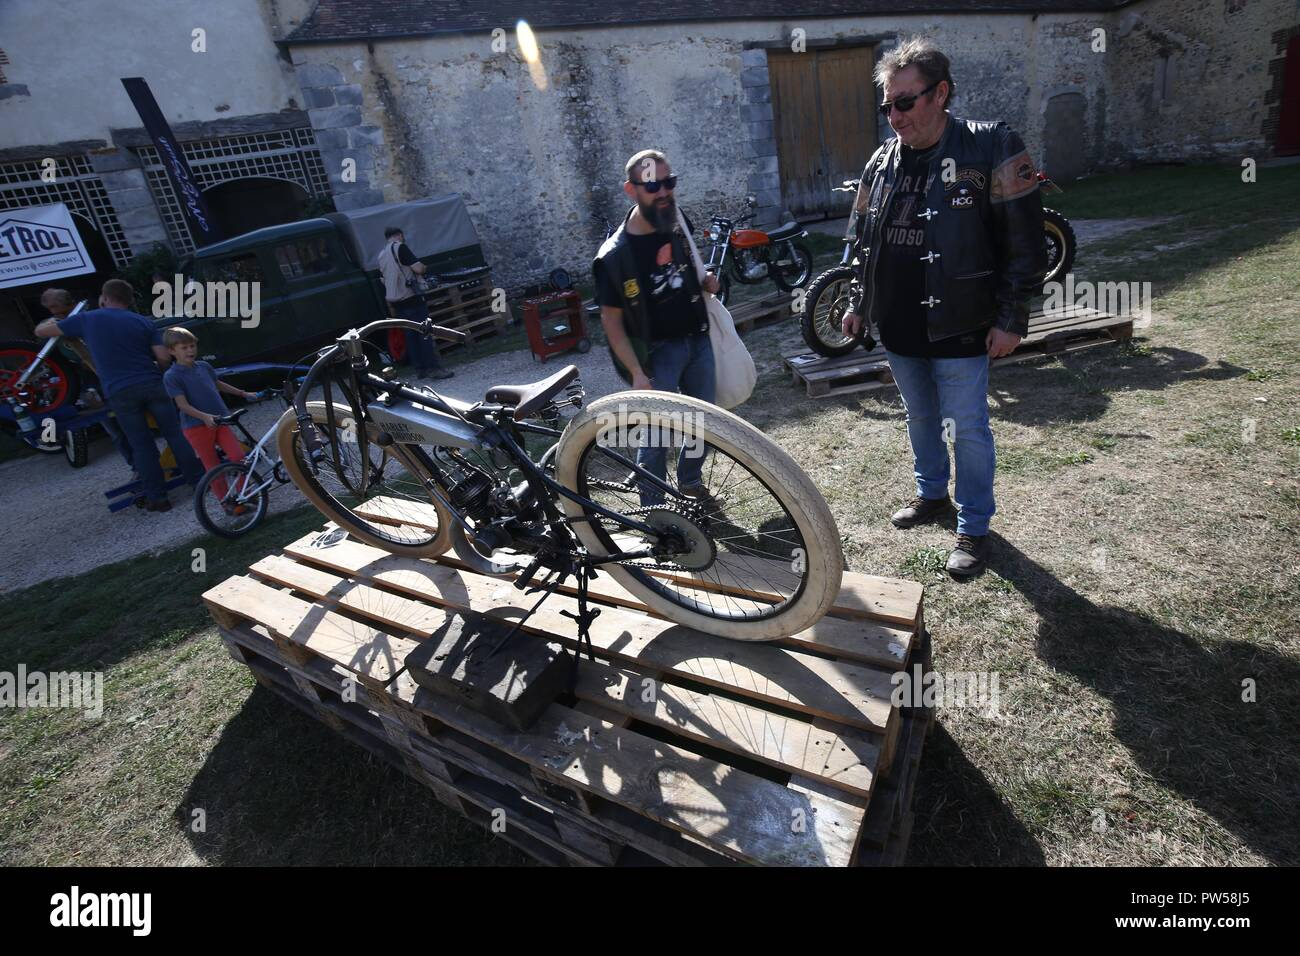 Hand Crafted Harley Davidson Board Racer at Château de Neuville in Gambais (78) – France. - Stock Image